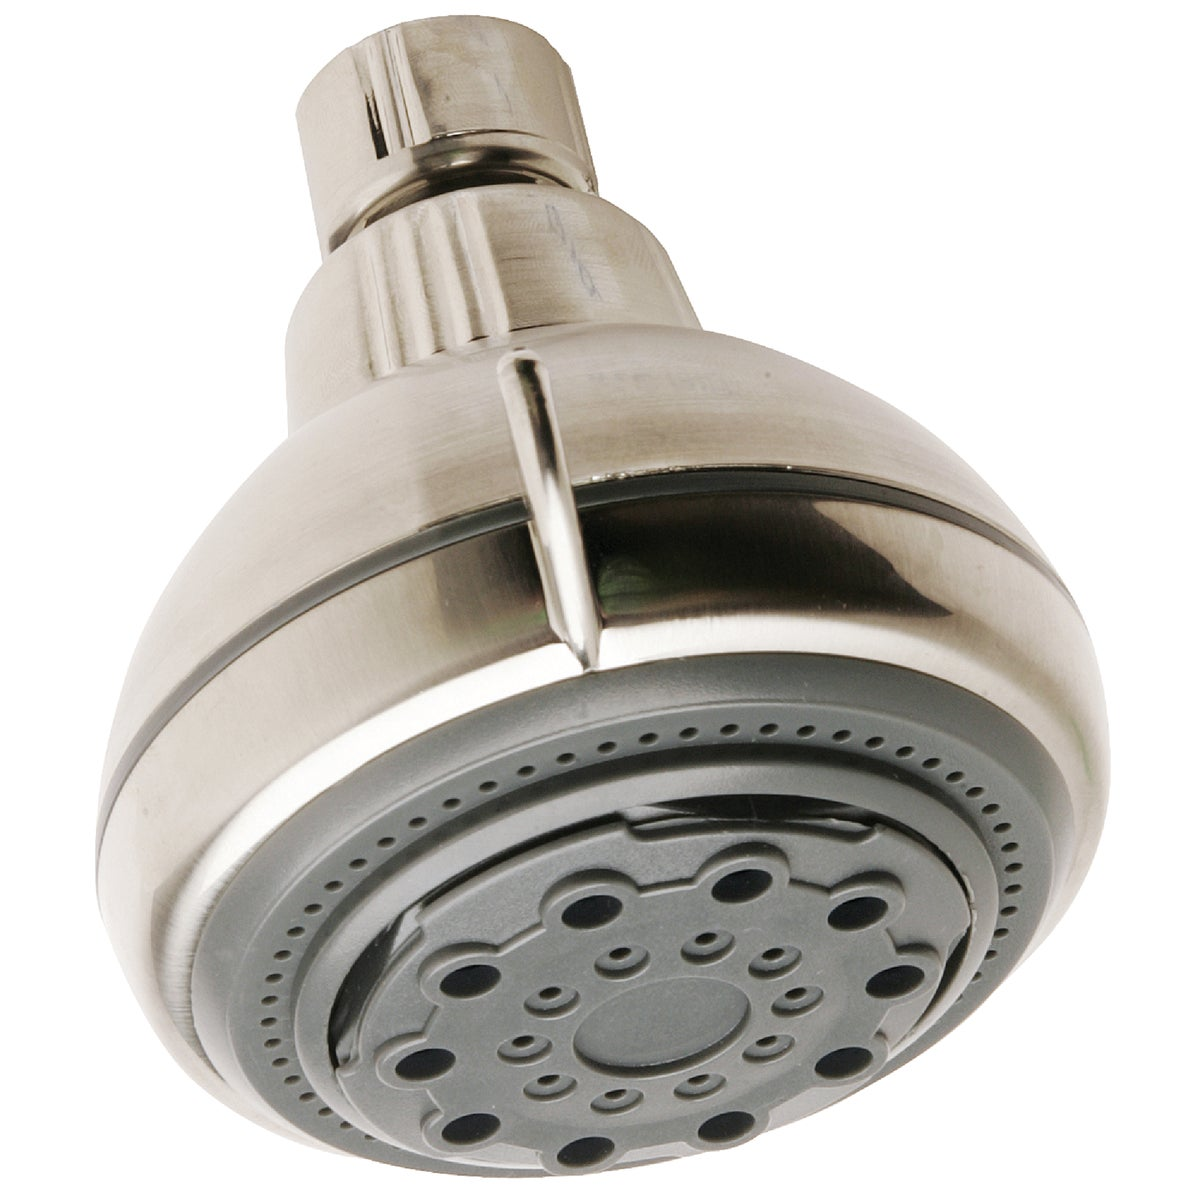 BN 5-FNCTN SHOWER HEAD